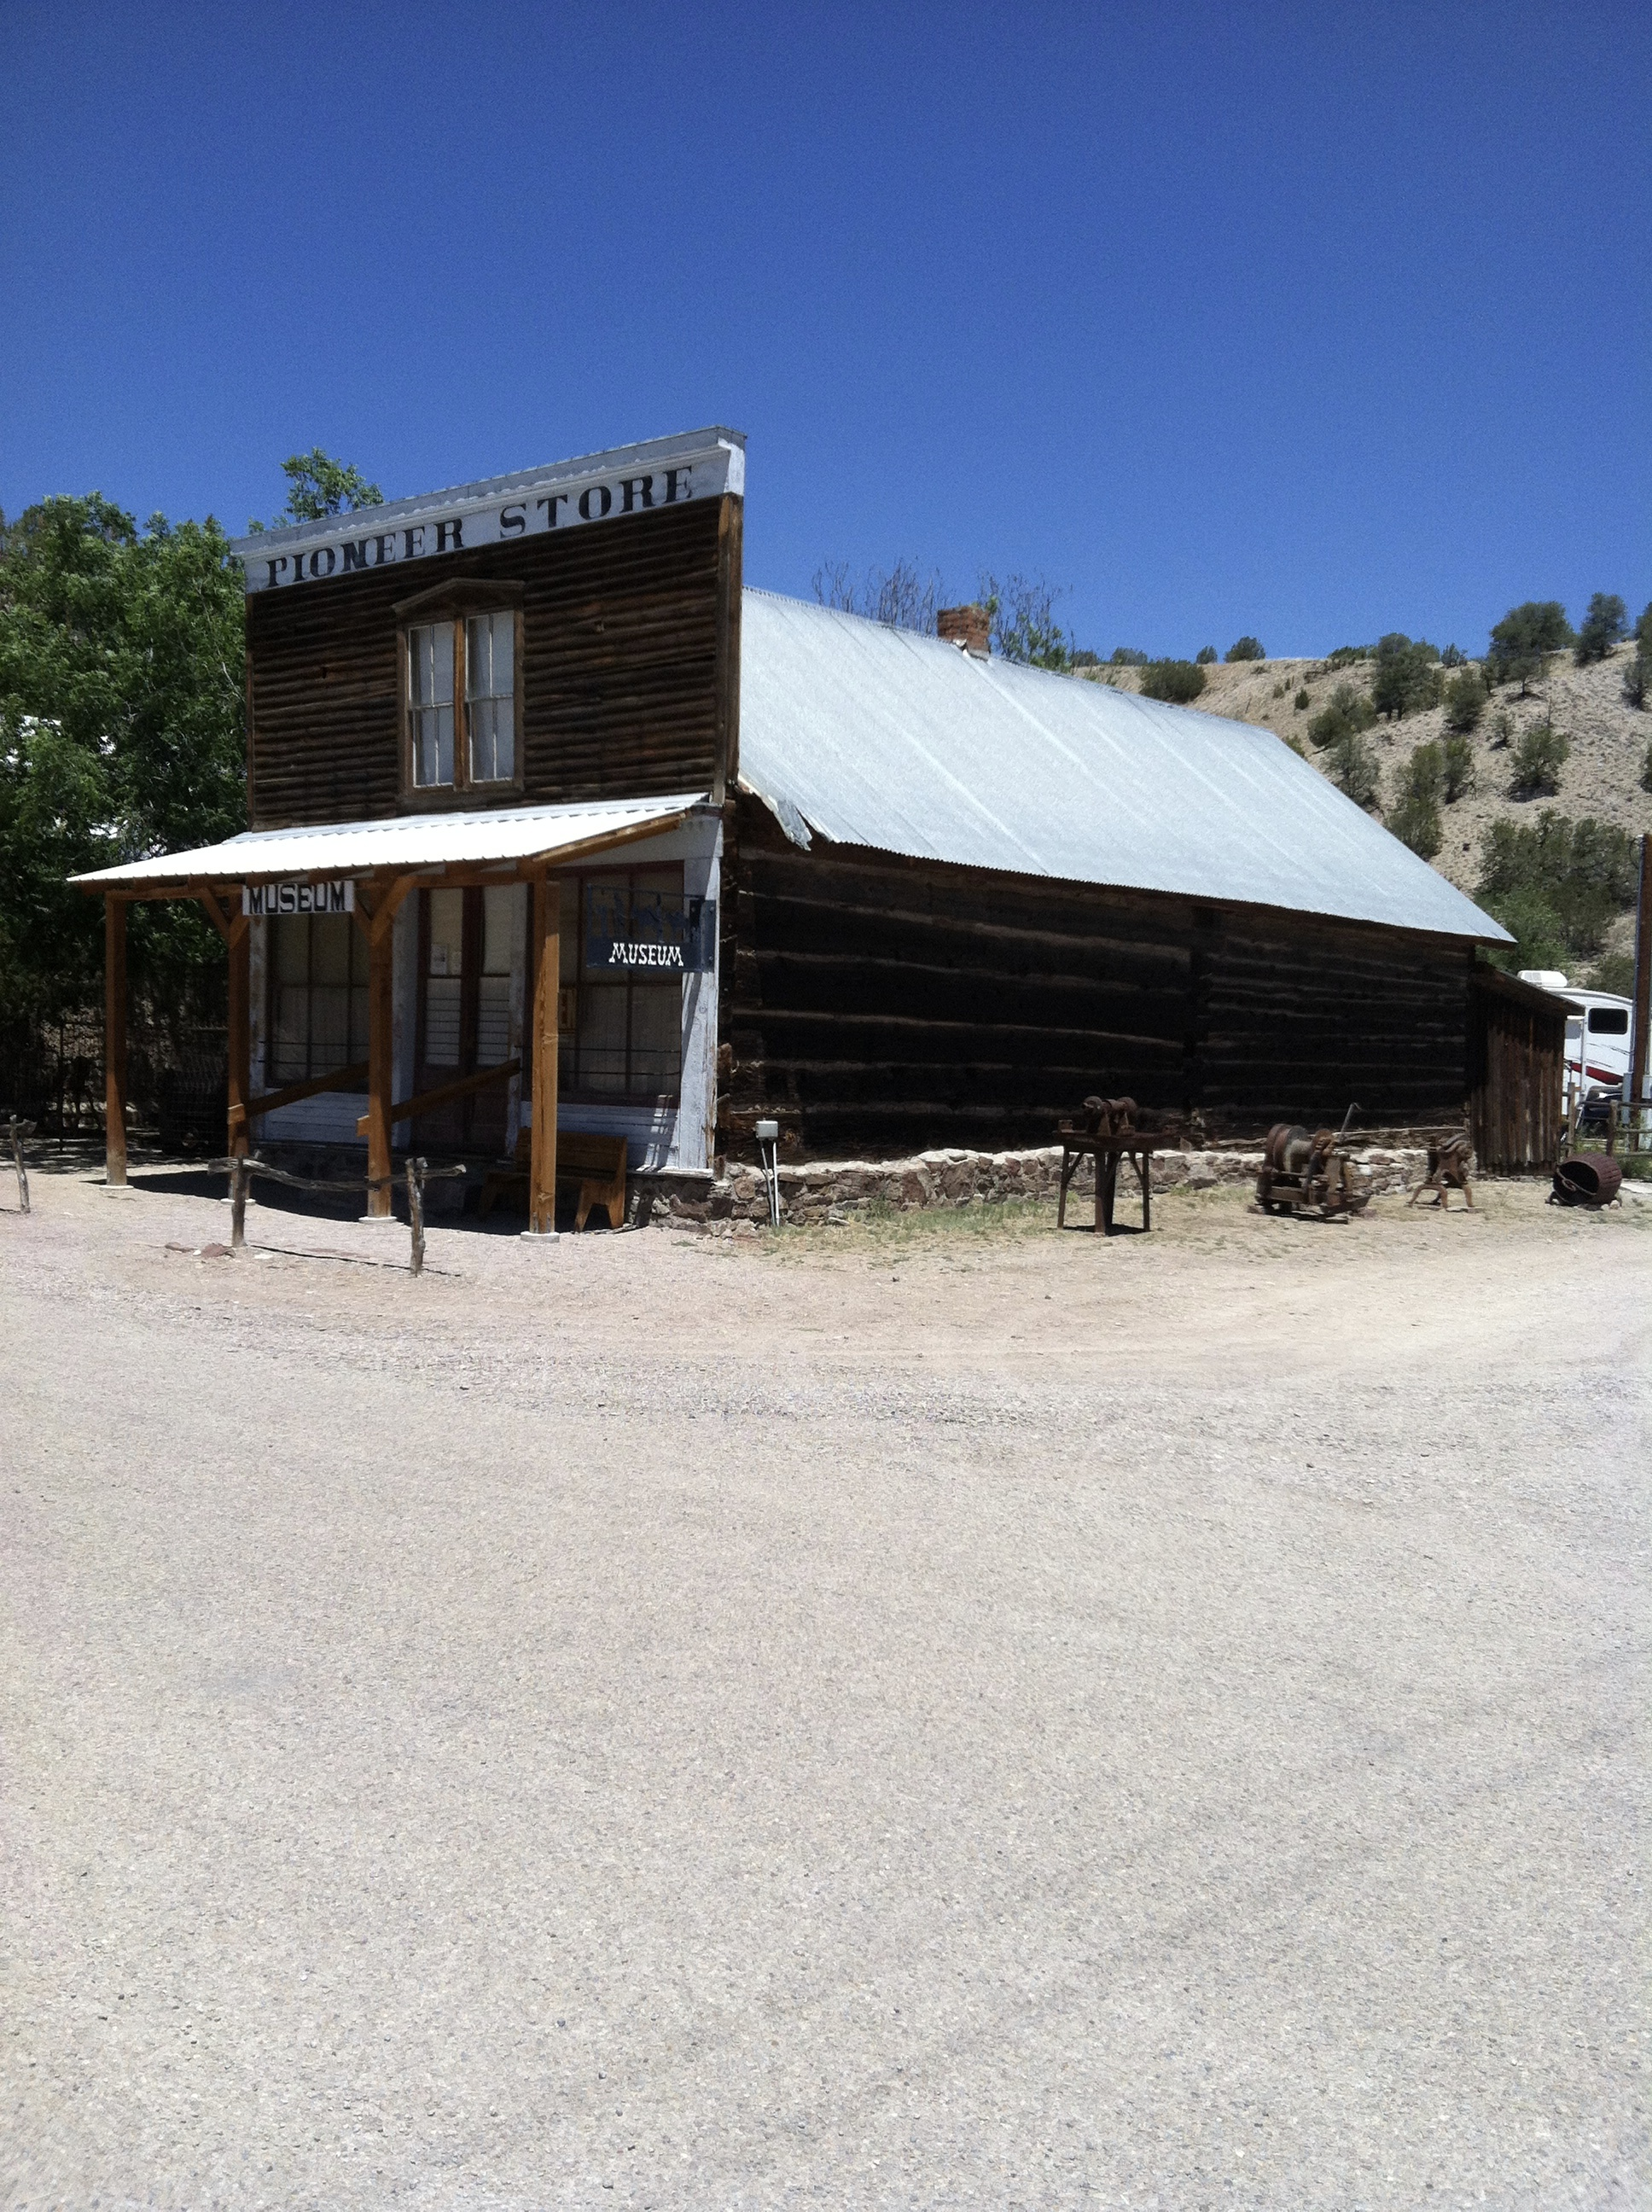 Pioneer Store and museum. Boarded up for more than 50 years.